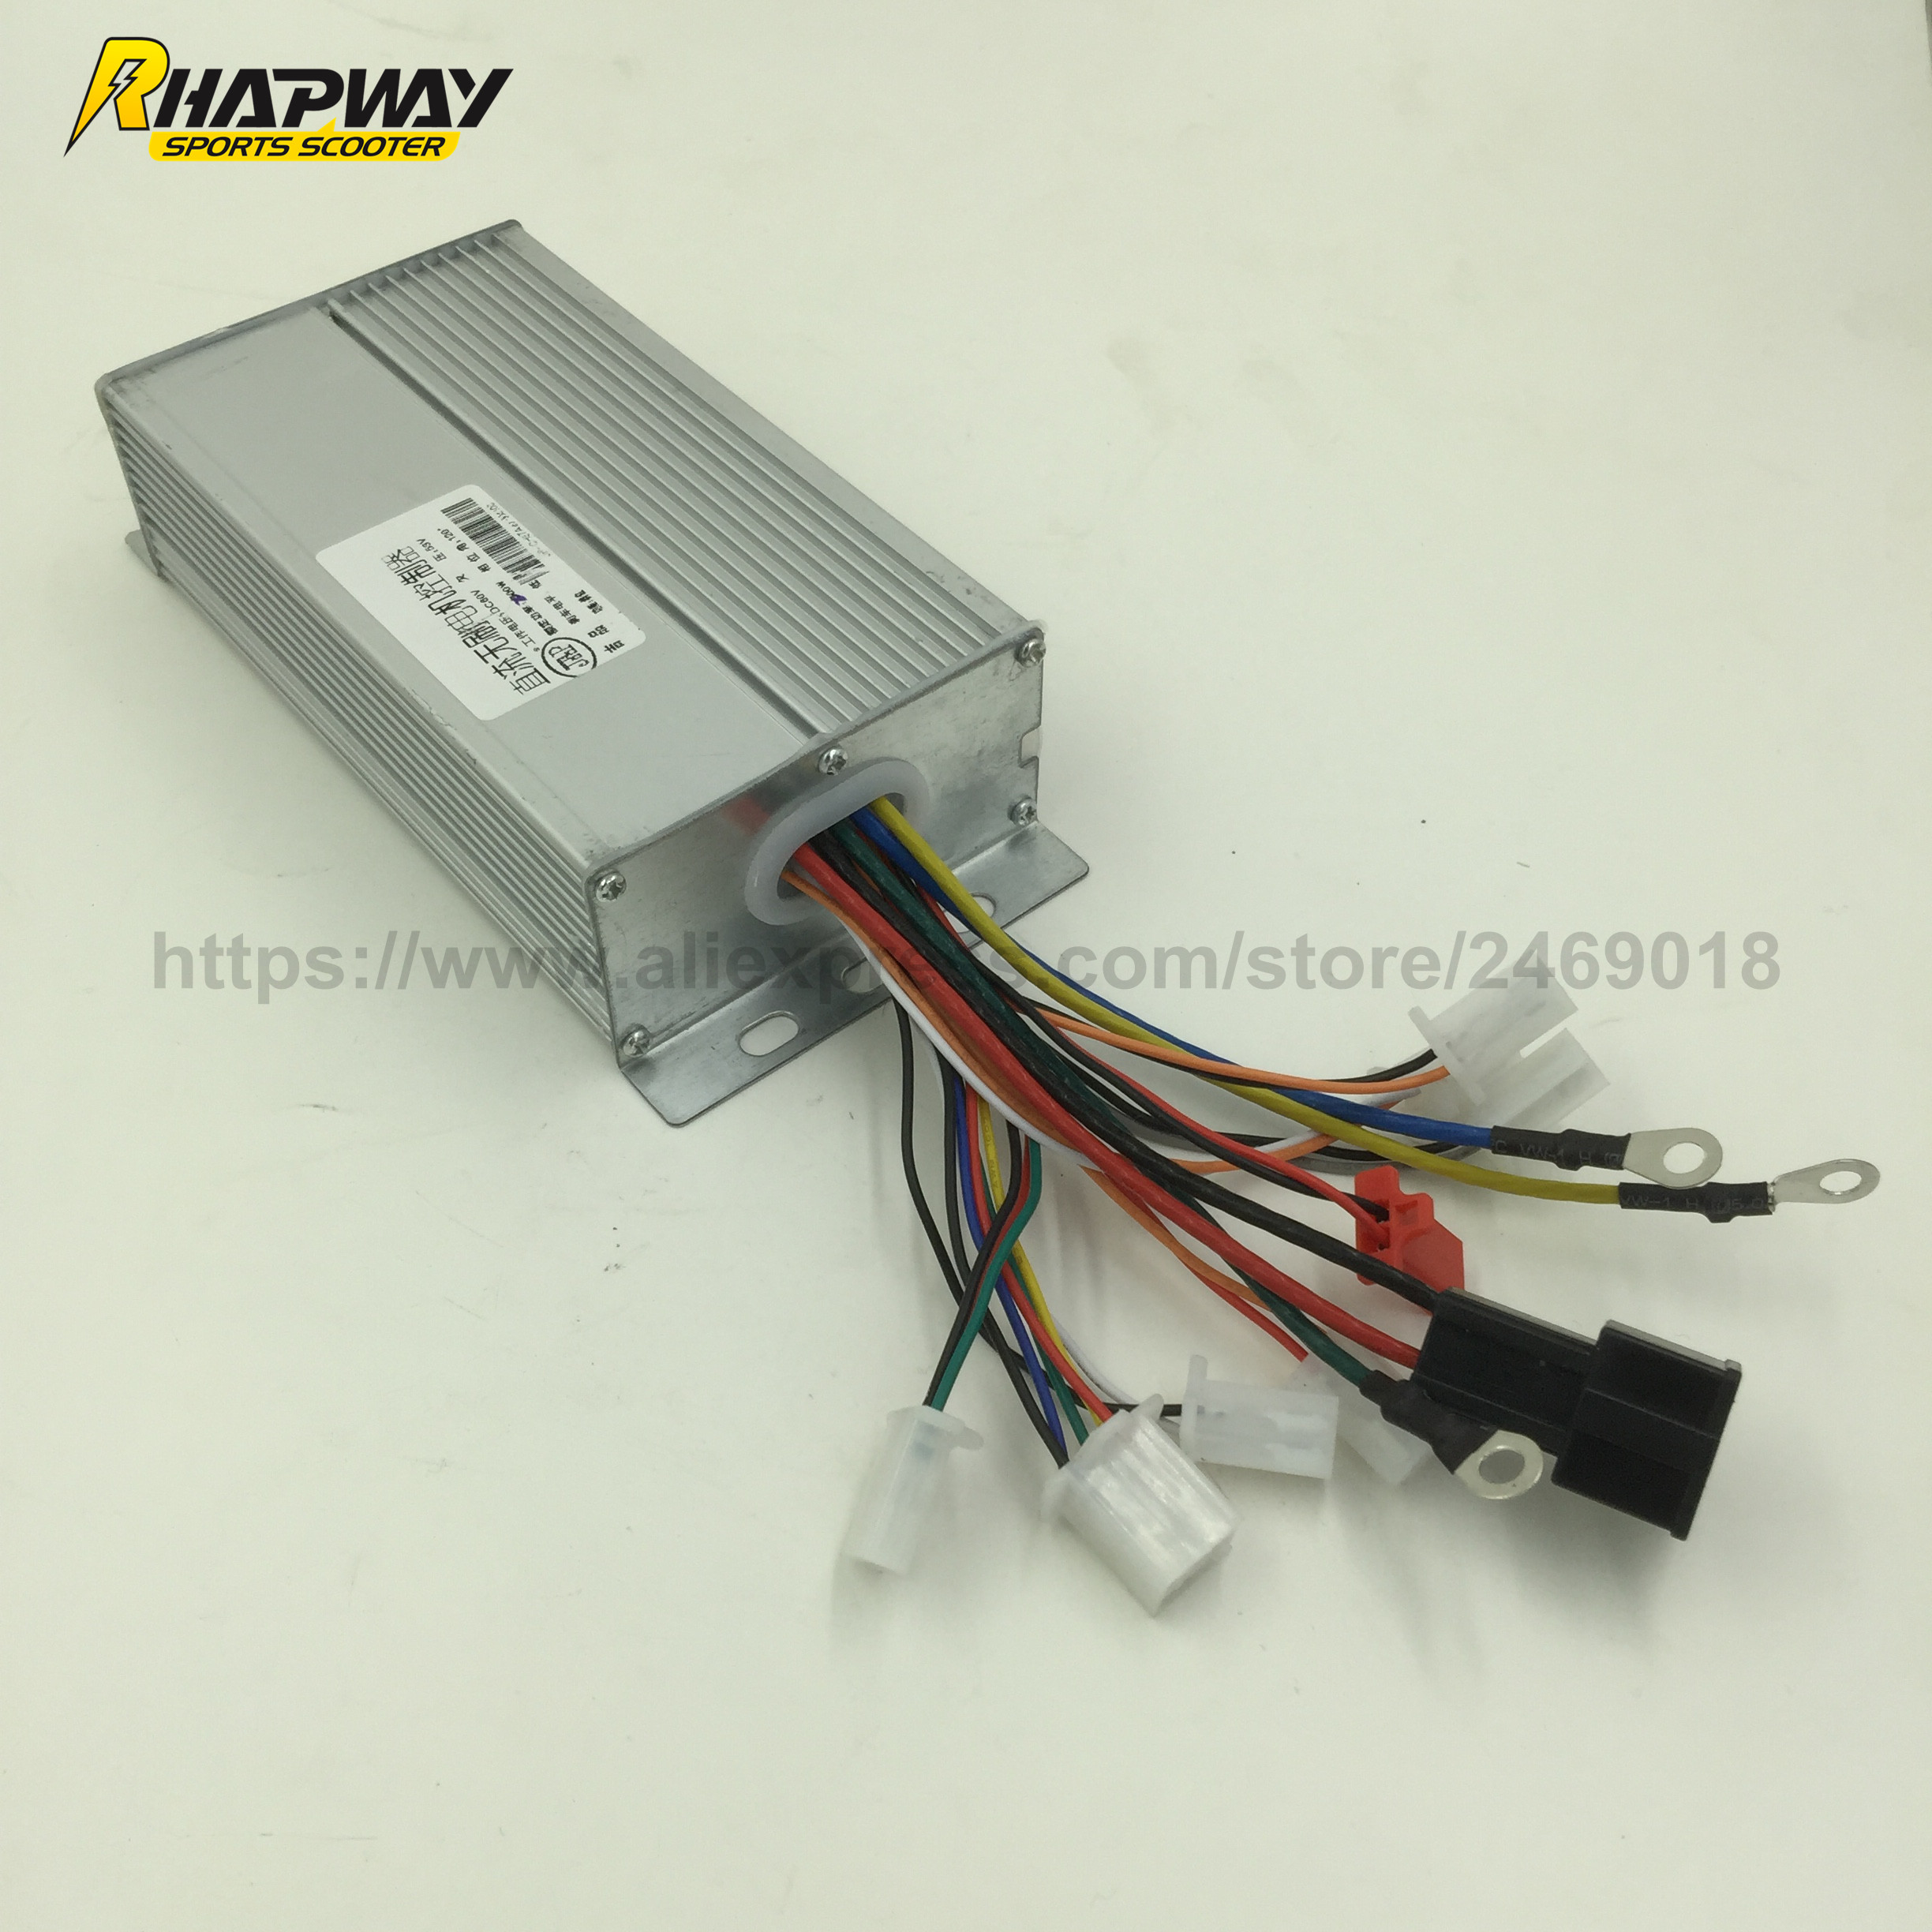 Electric Motor Scooter >> 2000W Scooter Brushless DC Motor Controller 60V BLDC Motor ...